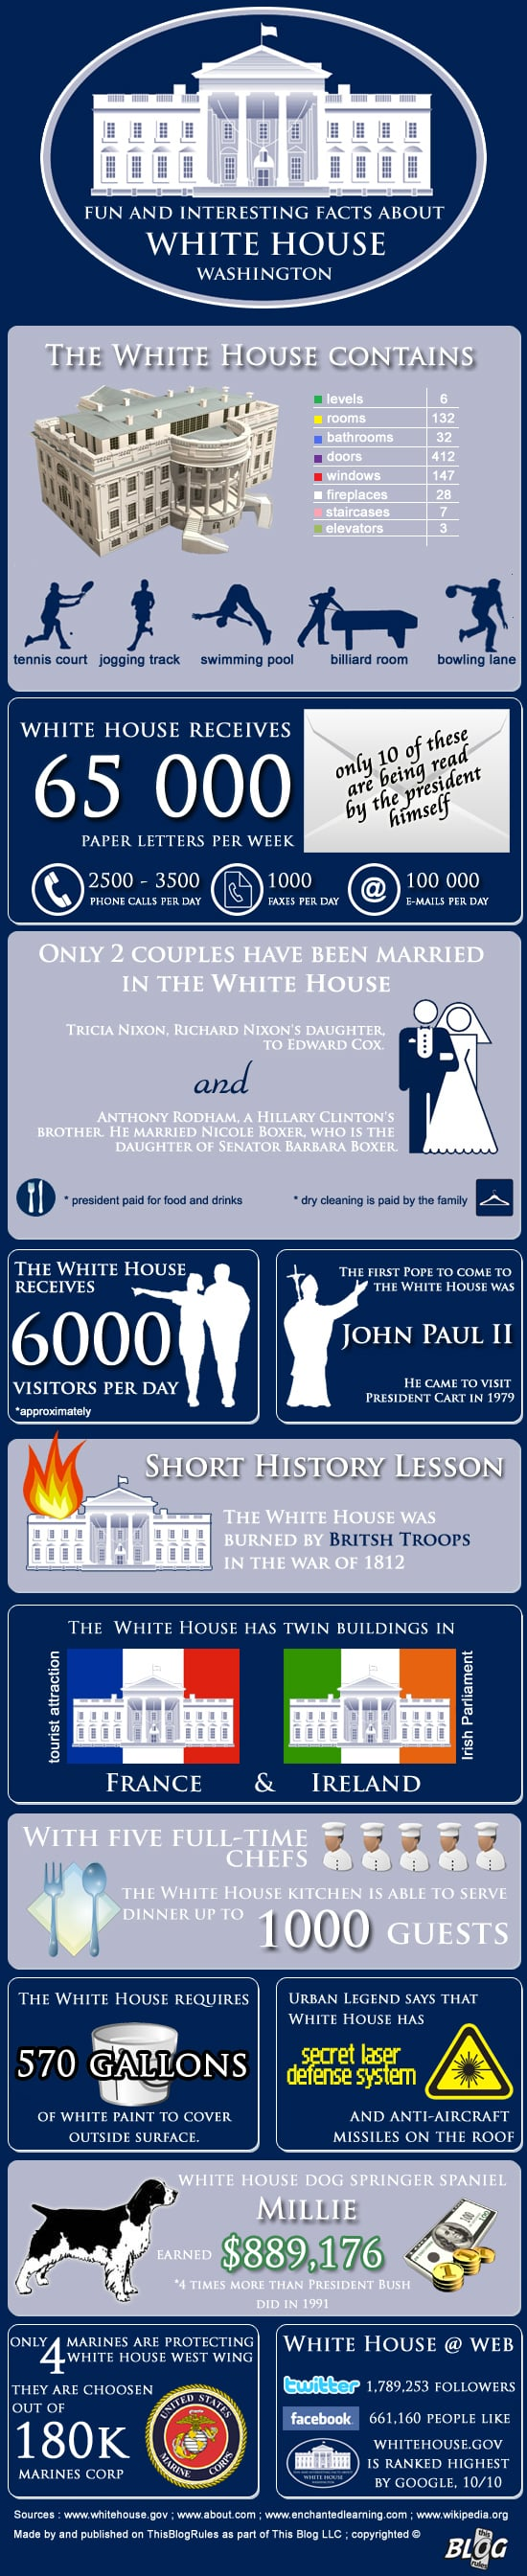 whitehouseinfographic